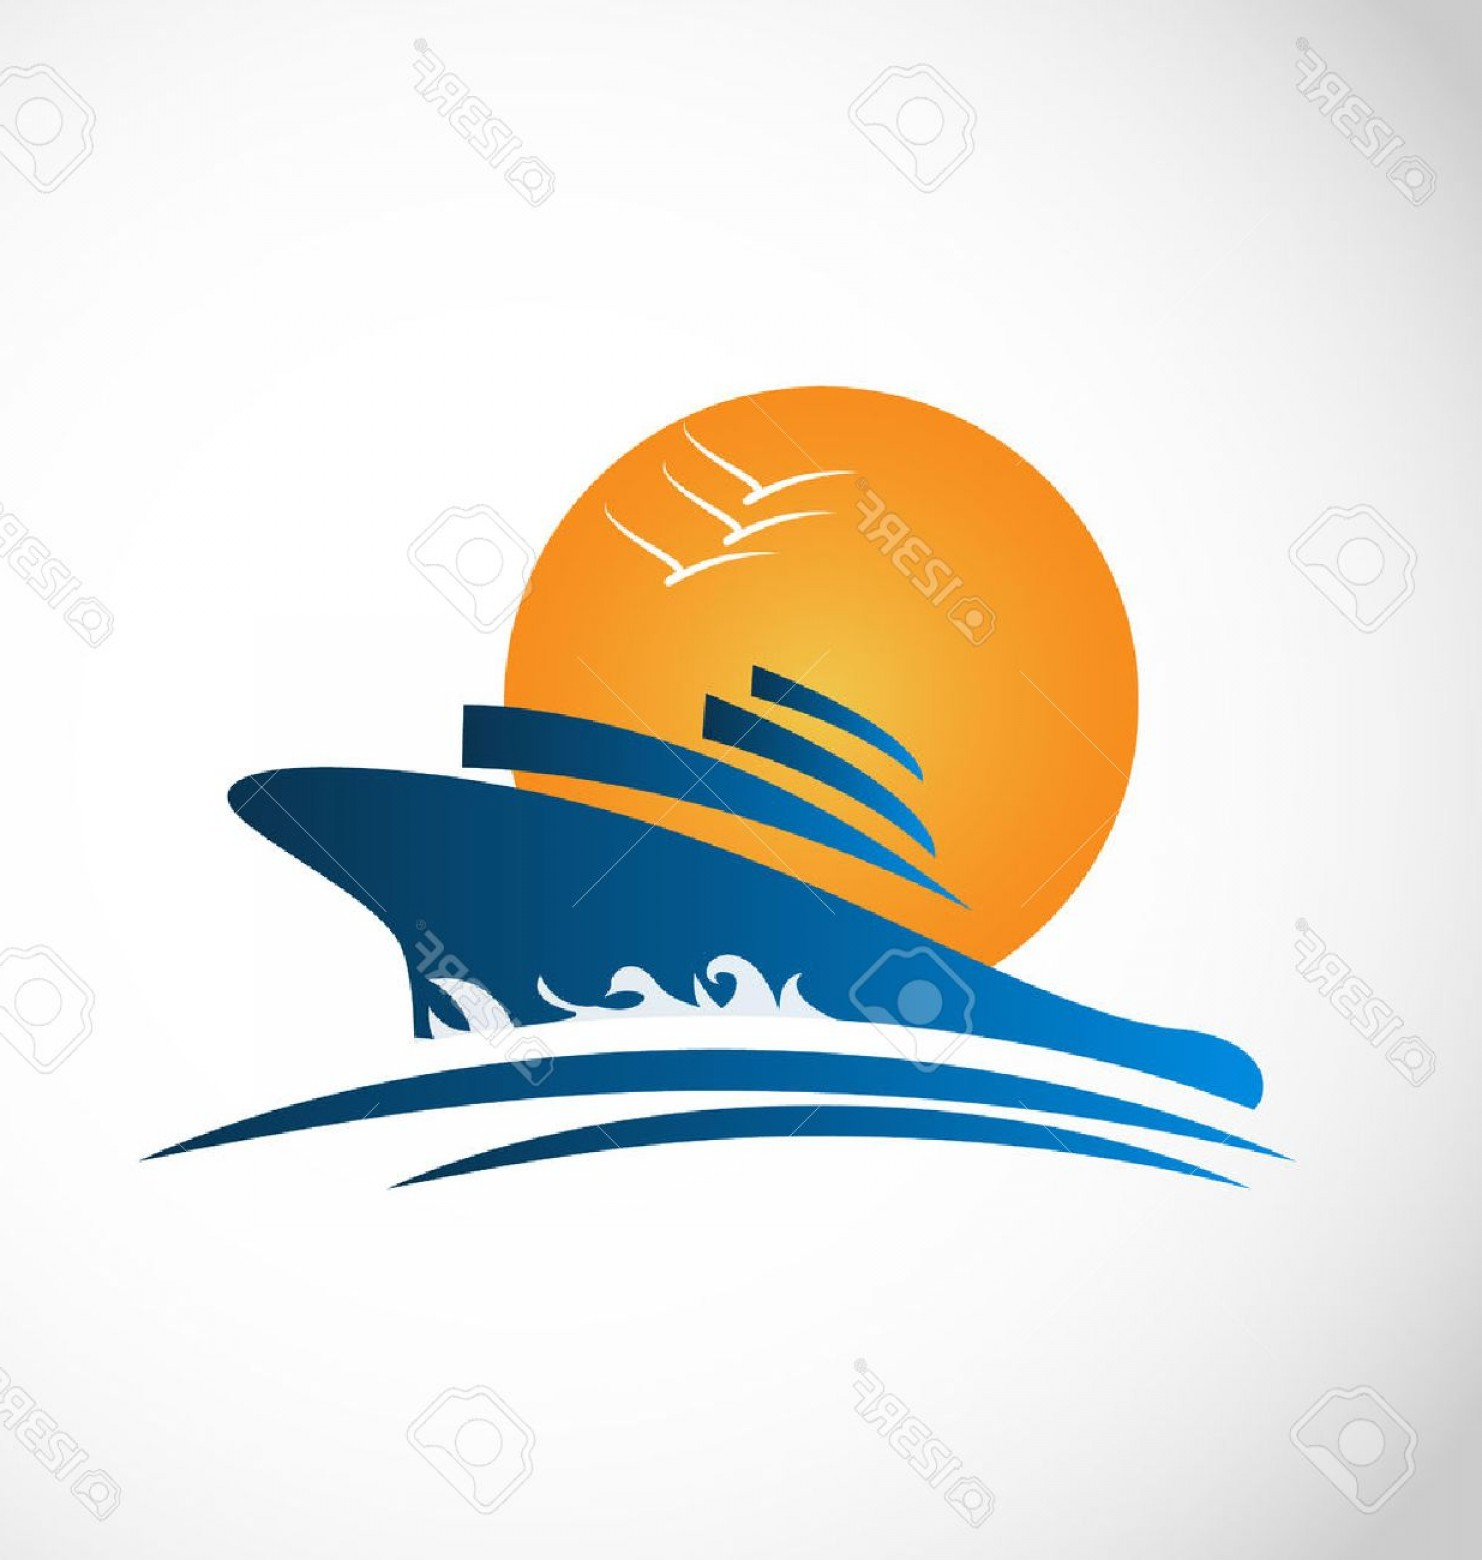 Waves With Cruise Ship Silhouette Vector: Photostock Vector Cruise Ship Sun And Waves Identity Card Icon Vector